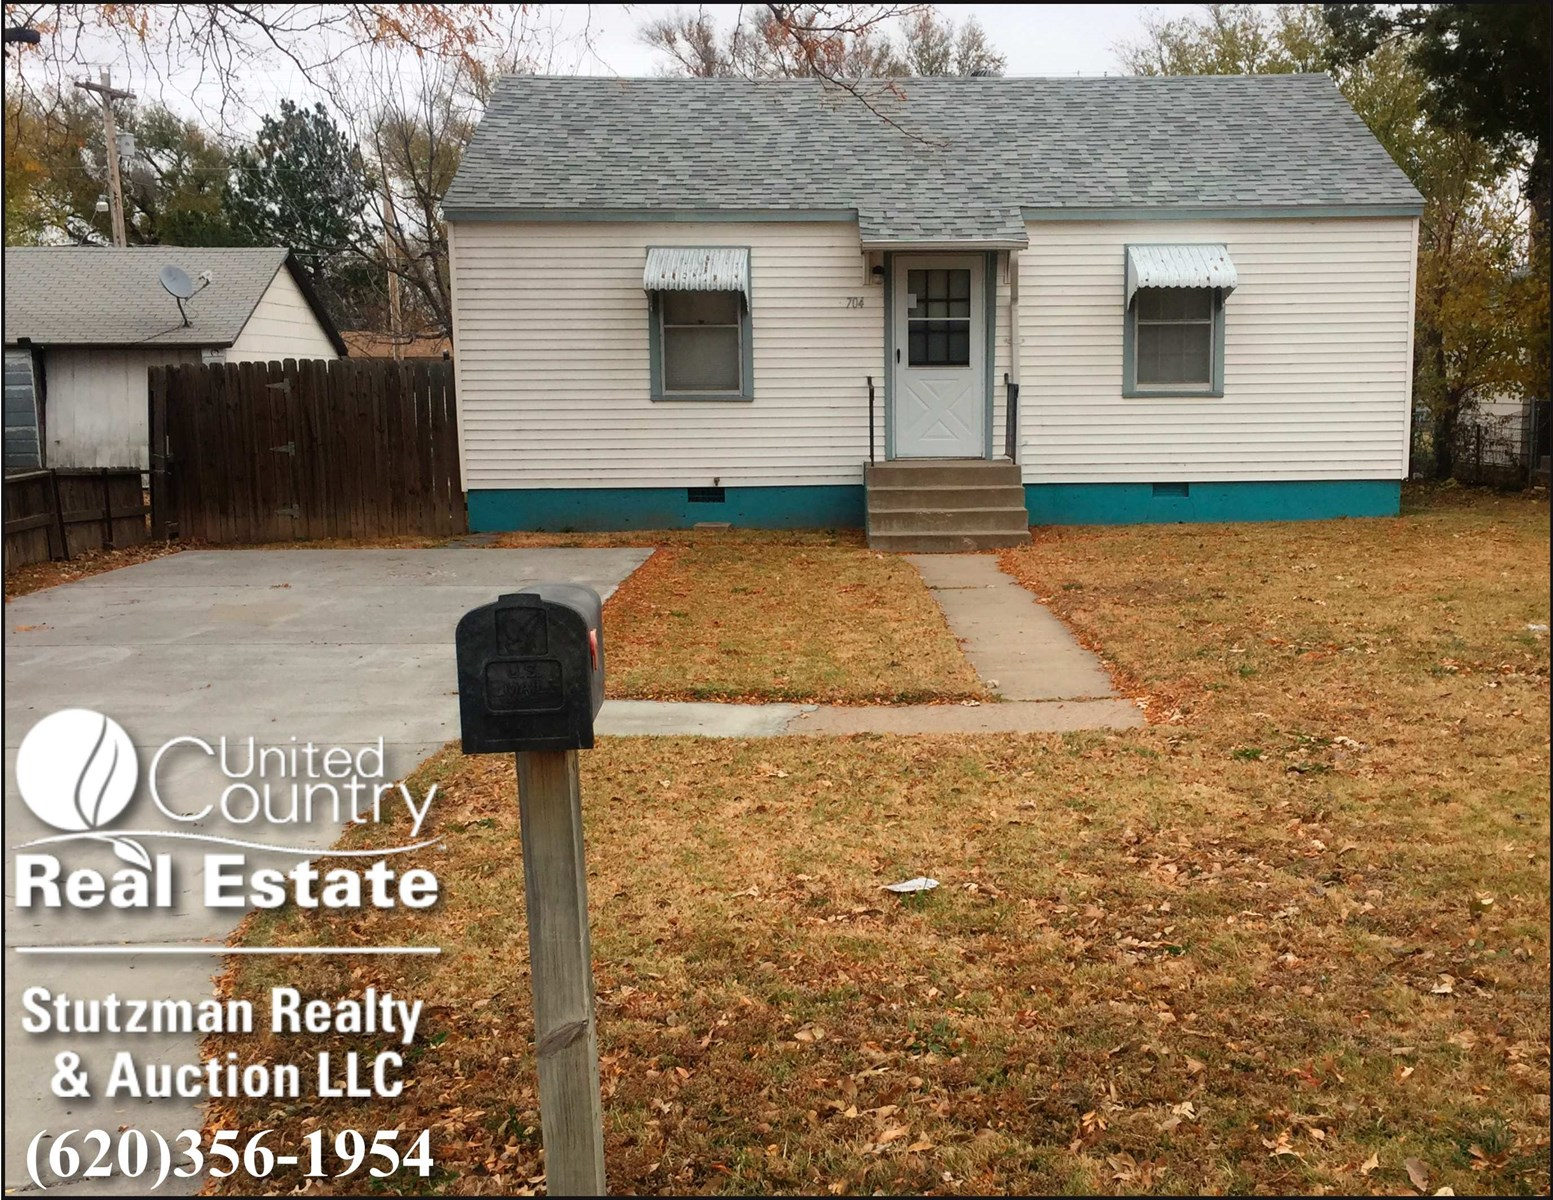 AFFORDABLE MOVE IN READY HOME FOR SALE IN ULYSSES, KANSAS